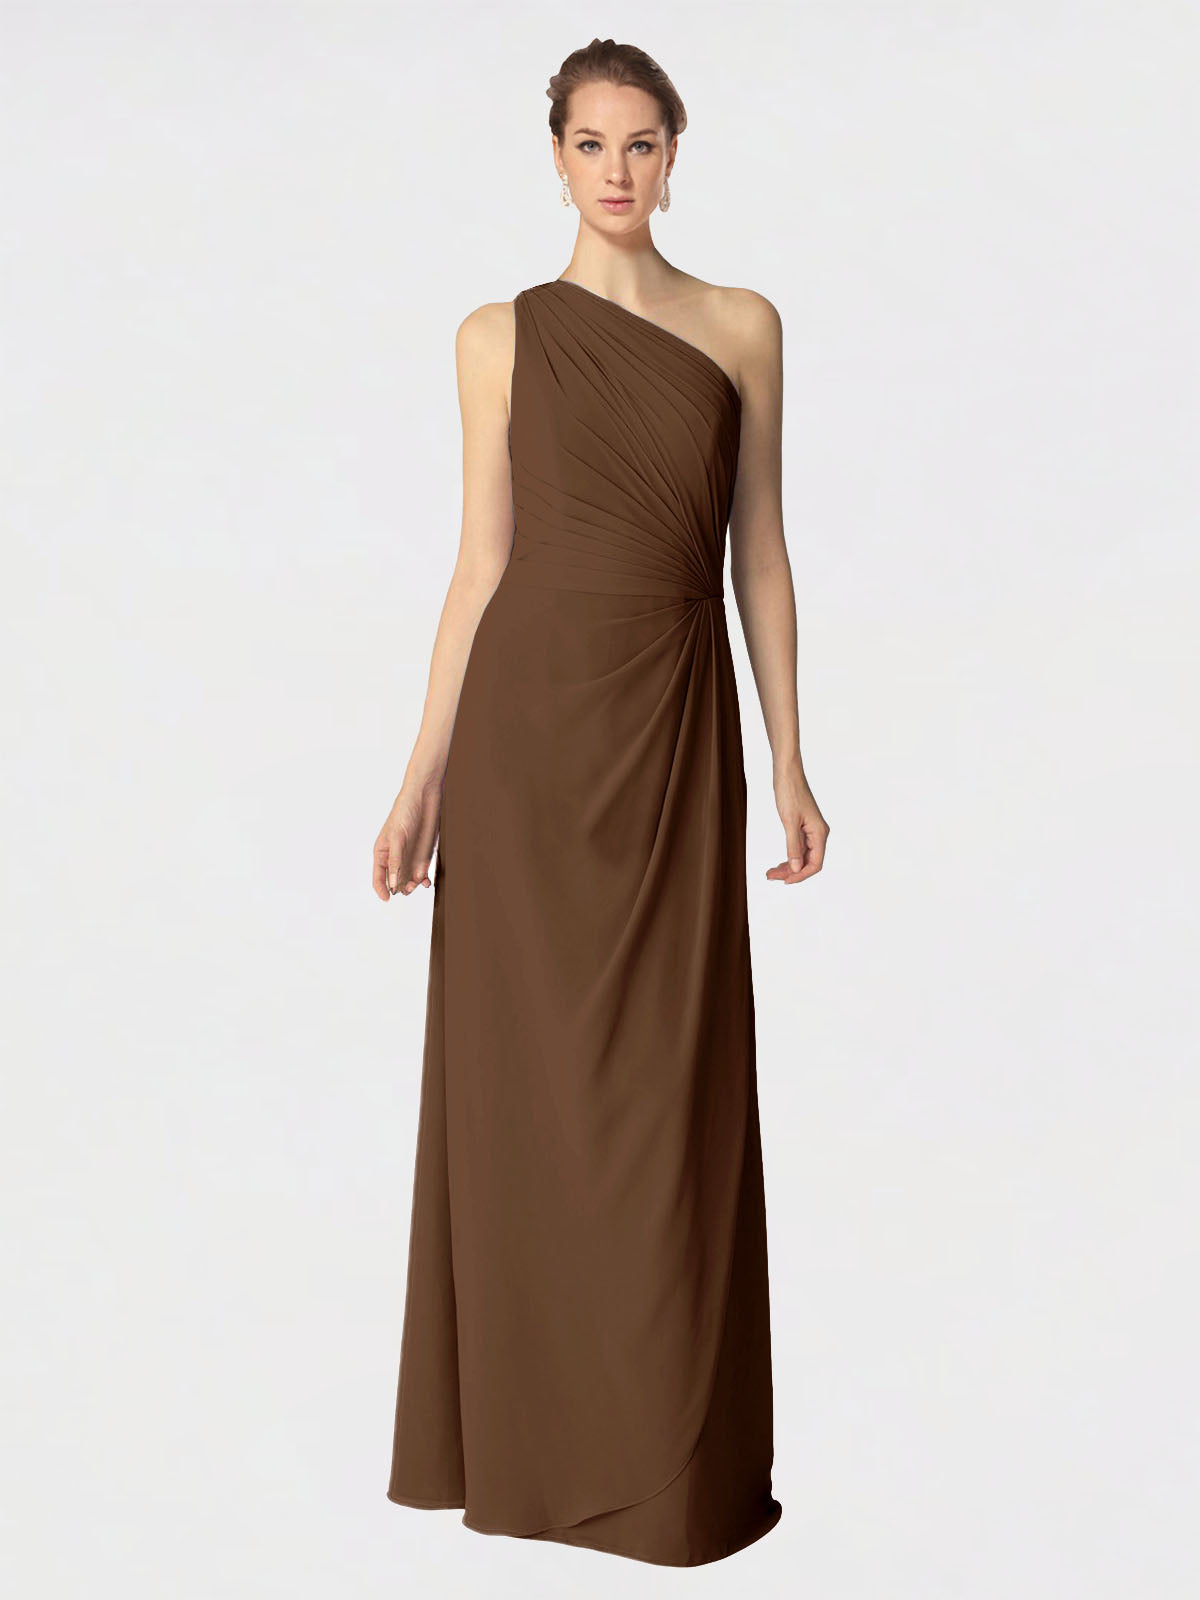 Long A-Line One Shoulder Sleeveless Brown Chiffon Bridesmaid Dress Aurora